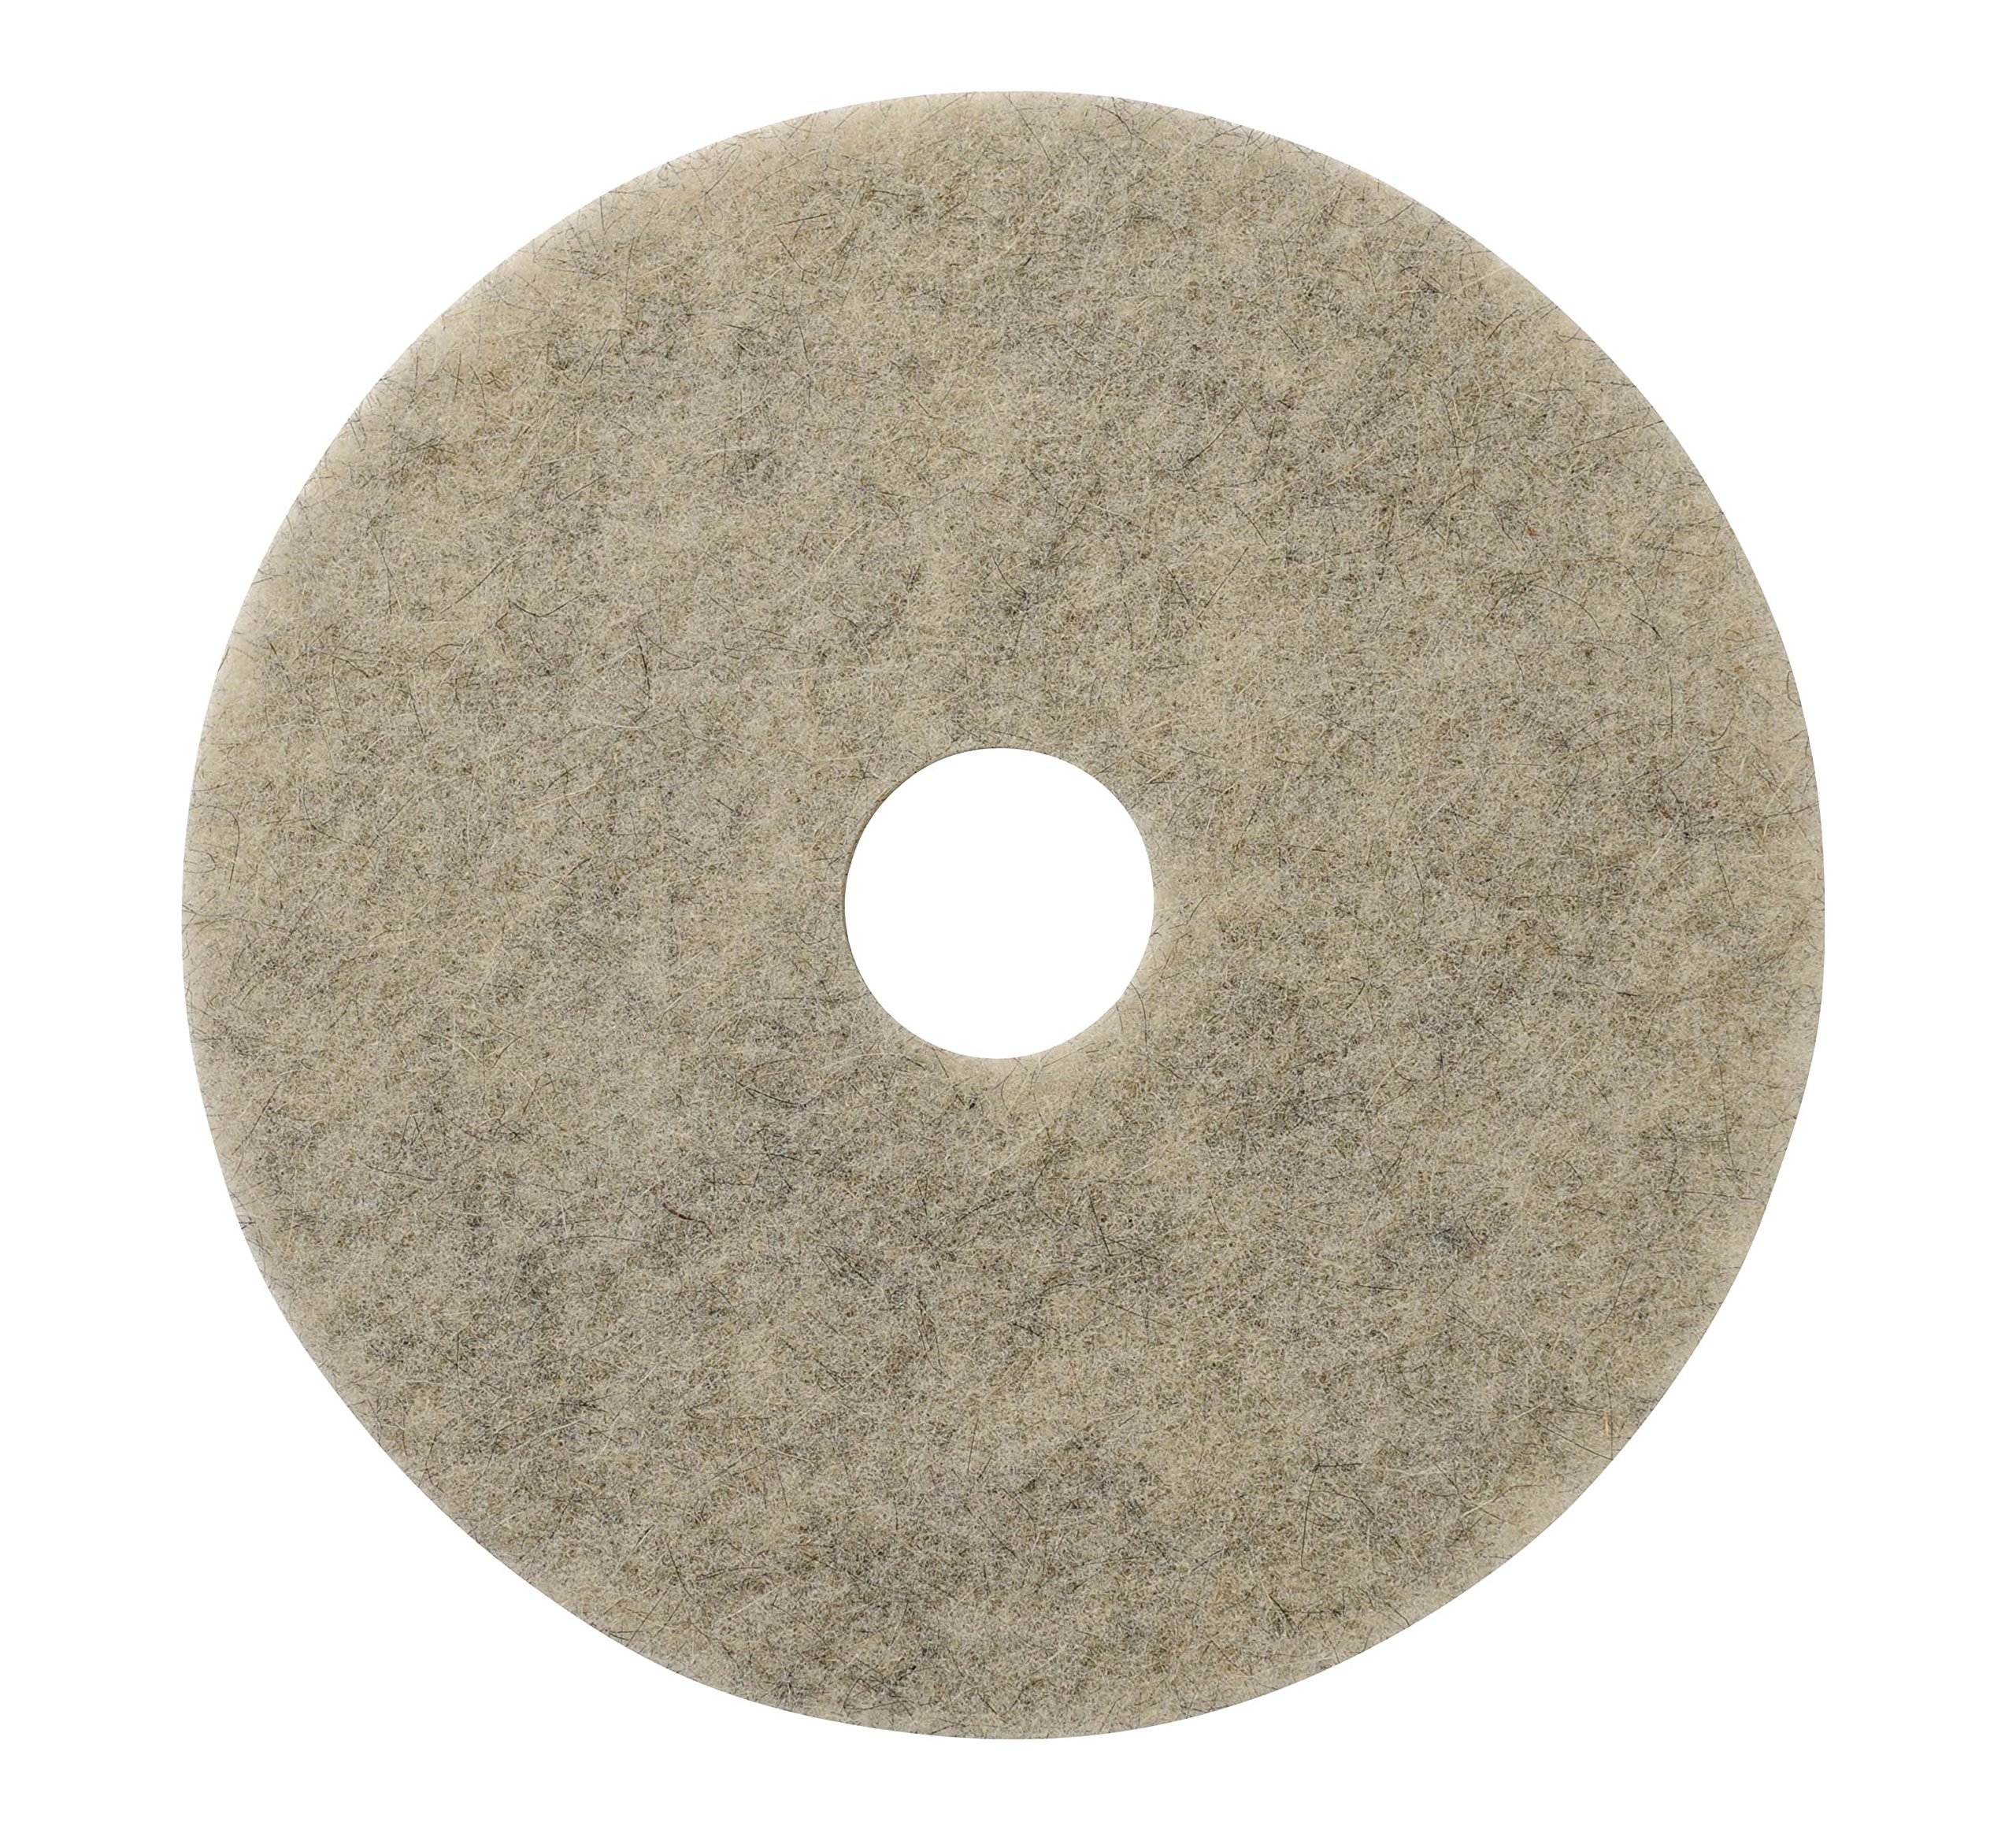 Glit/Microtron 401820 Jackaroo High Gloss Pad, Natural Fiber, 20'', Gray (Pack of 5) by Glit / Microtron